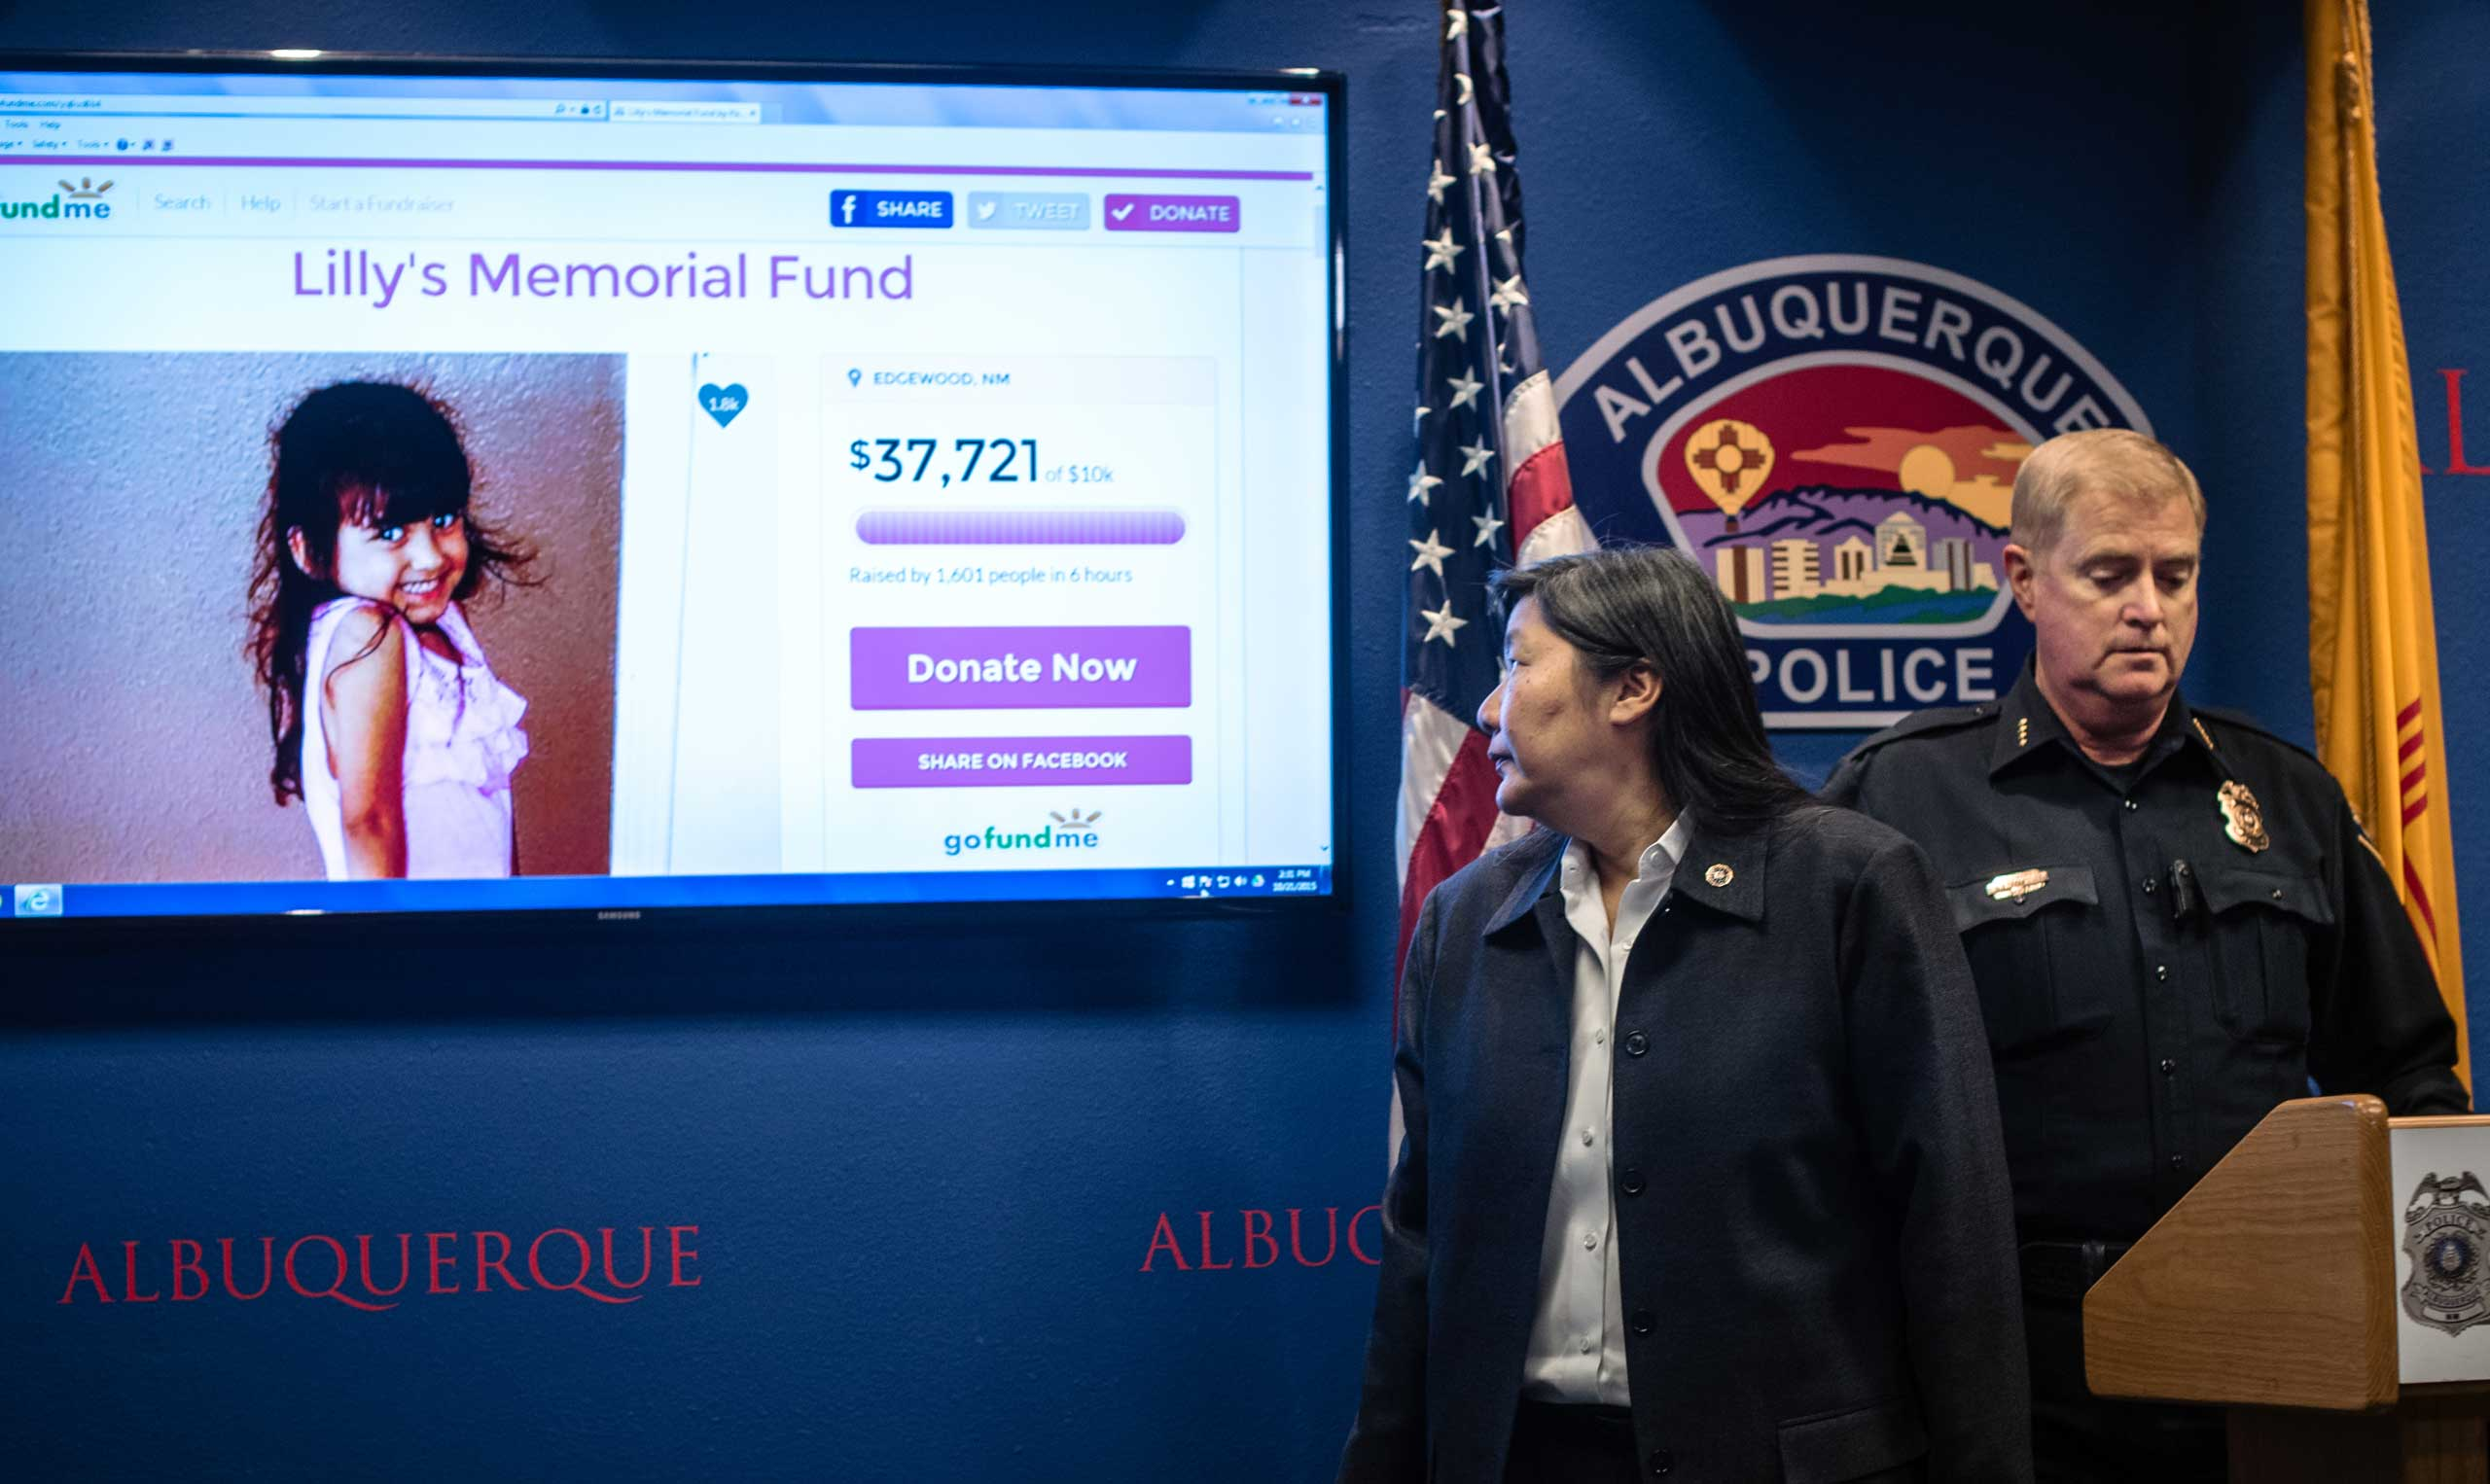 FBI special agent in charge Carol  Lee, and Albuquerque Police Department Chief Gorden Eden address the media regarding the recent road-rage incident where four-year-old Lilly Garcia was shot in Albuquerque, N.M., on Oct. 21, 2015. P